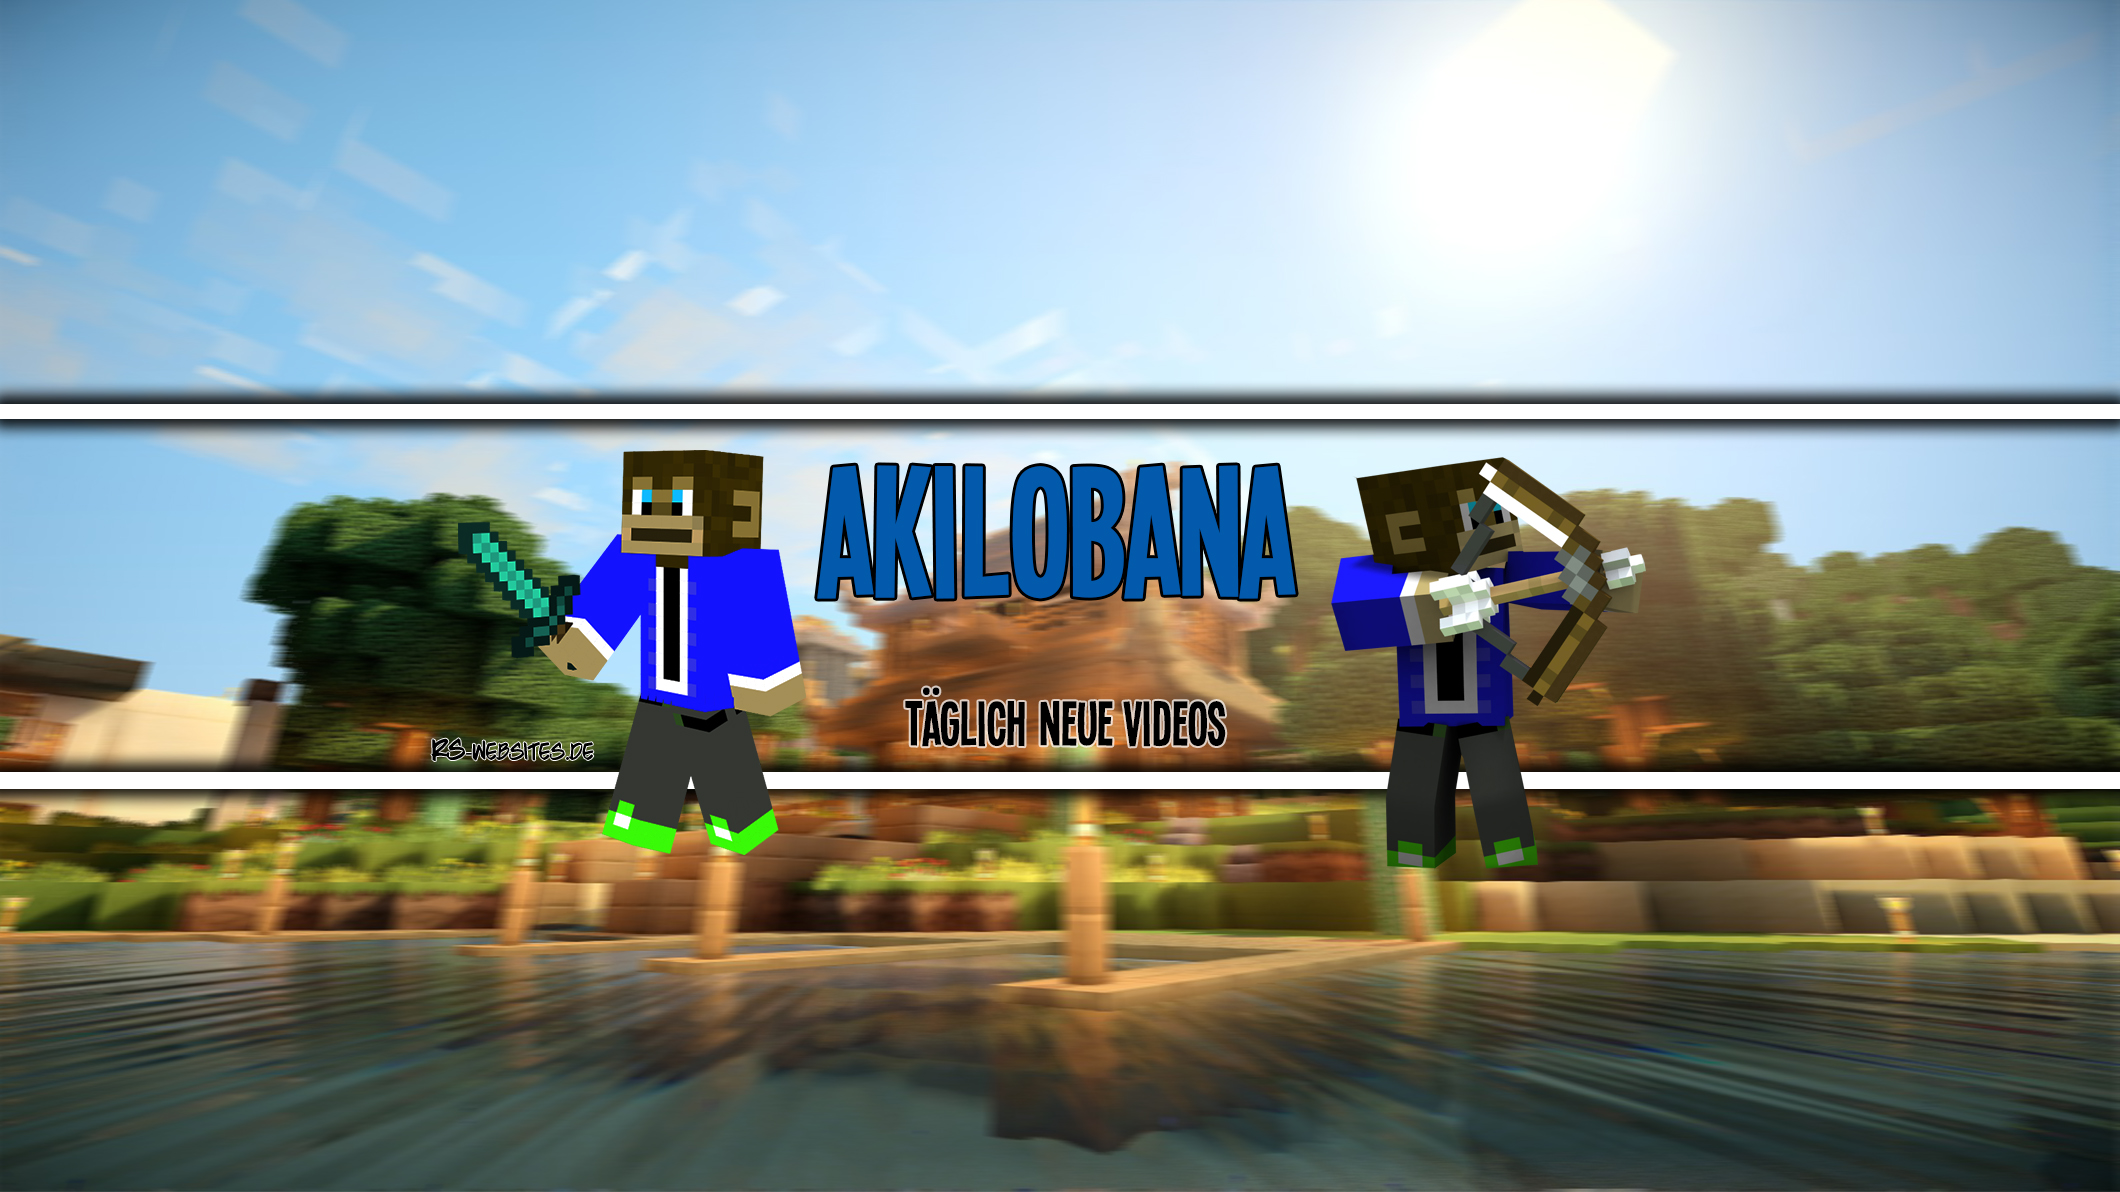 The Akilobana YouTube Banner